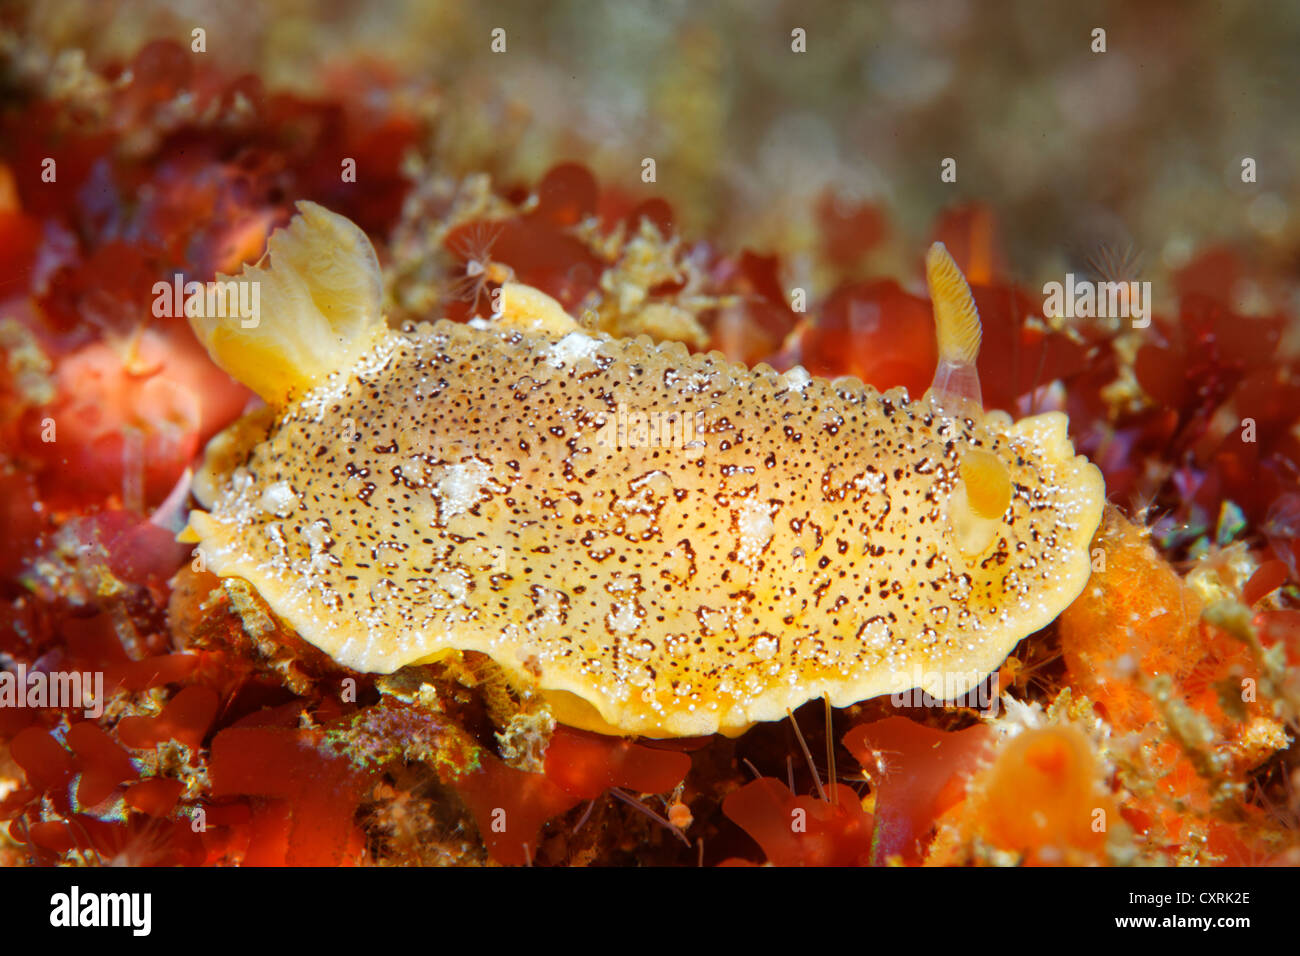 Unidentified nudibranch (Nudibranchia), Ponta de Sao Vicente, Isabella Island, Albemarle, Galapagos Islands, a UNESCO - Stock Image